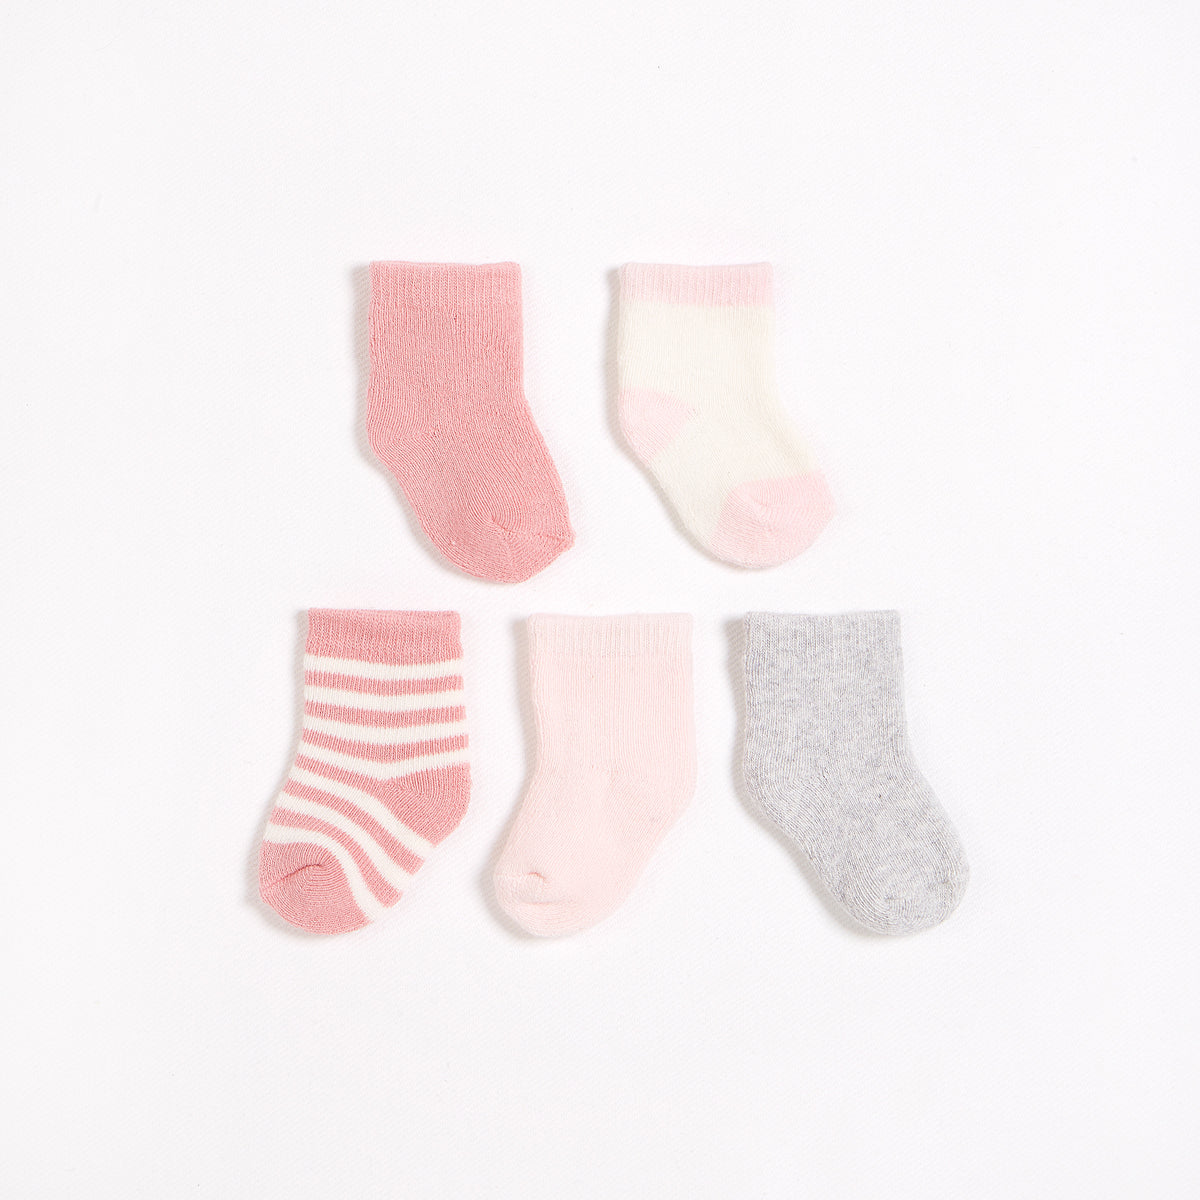 5 Pack of Grey, Pink & White Socks